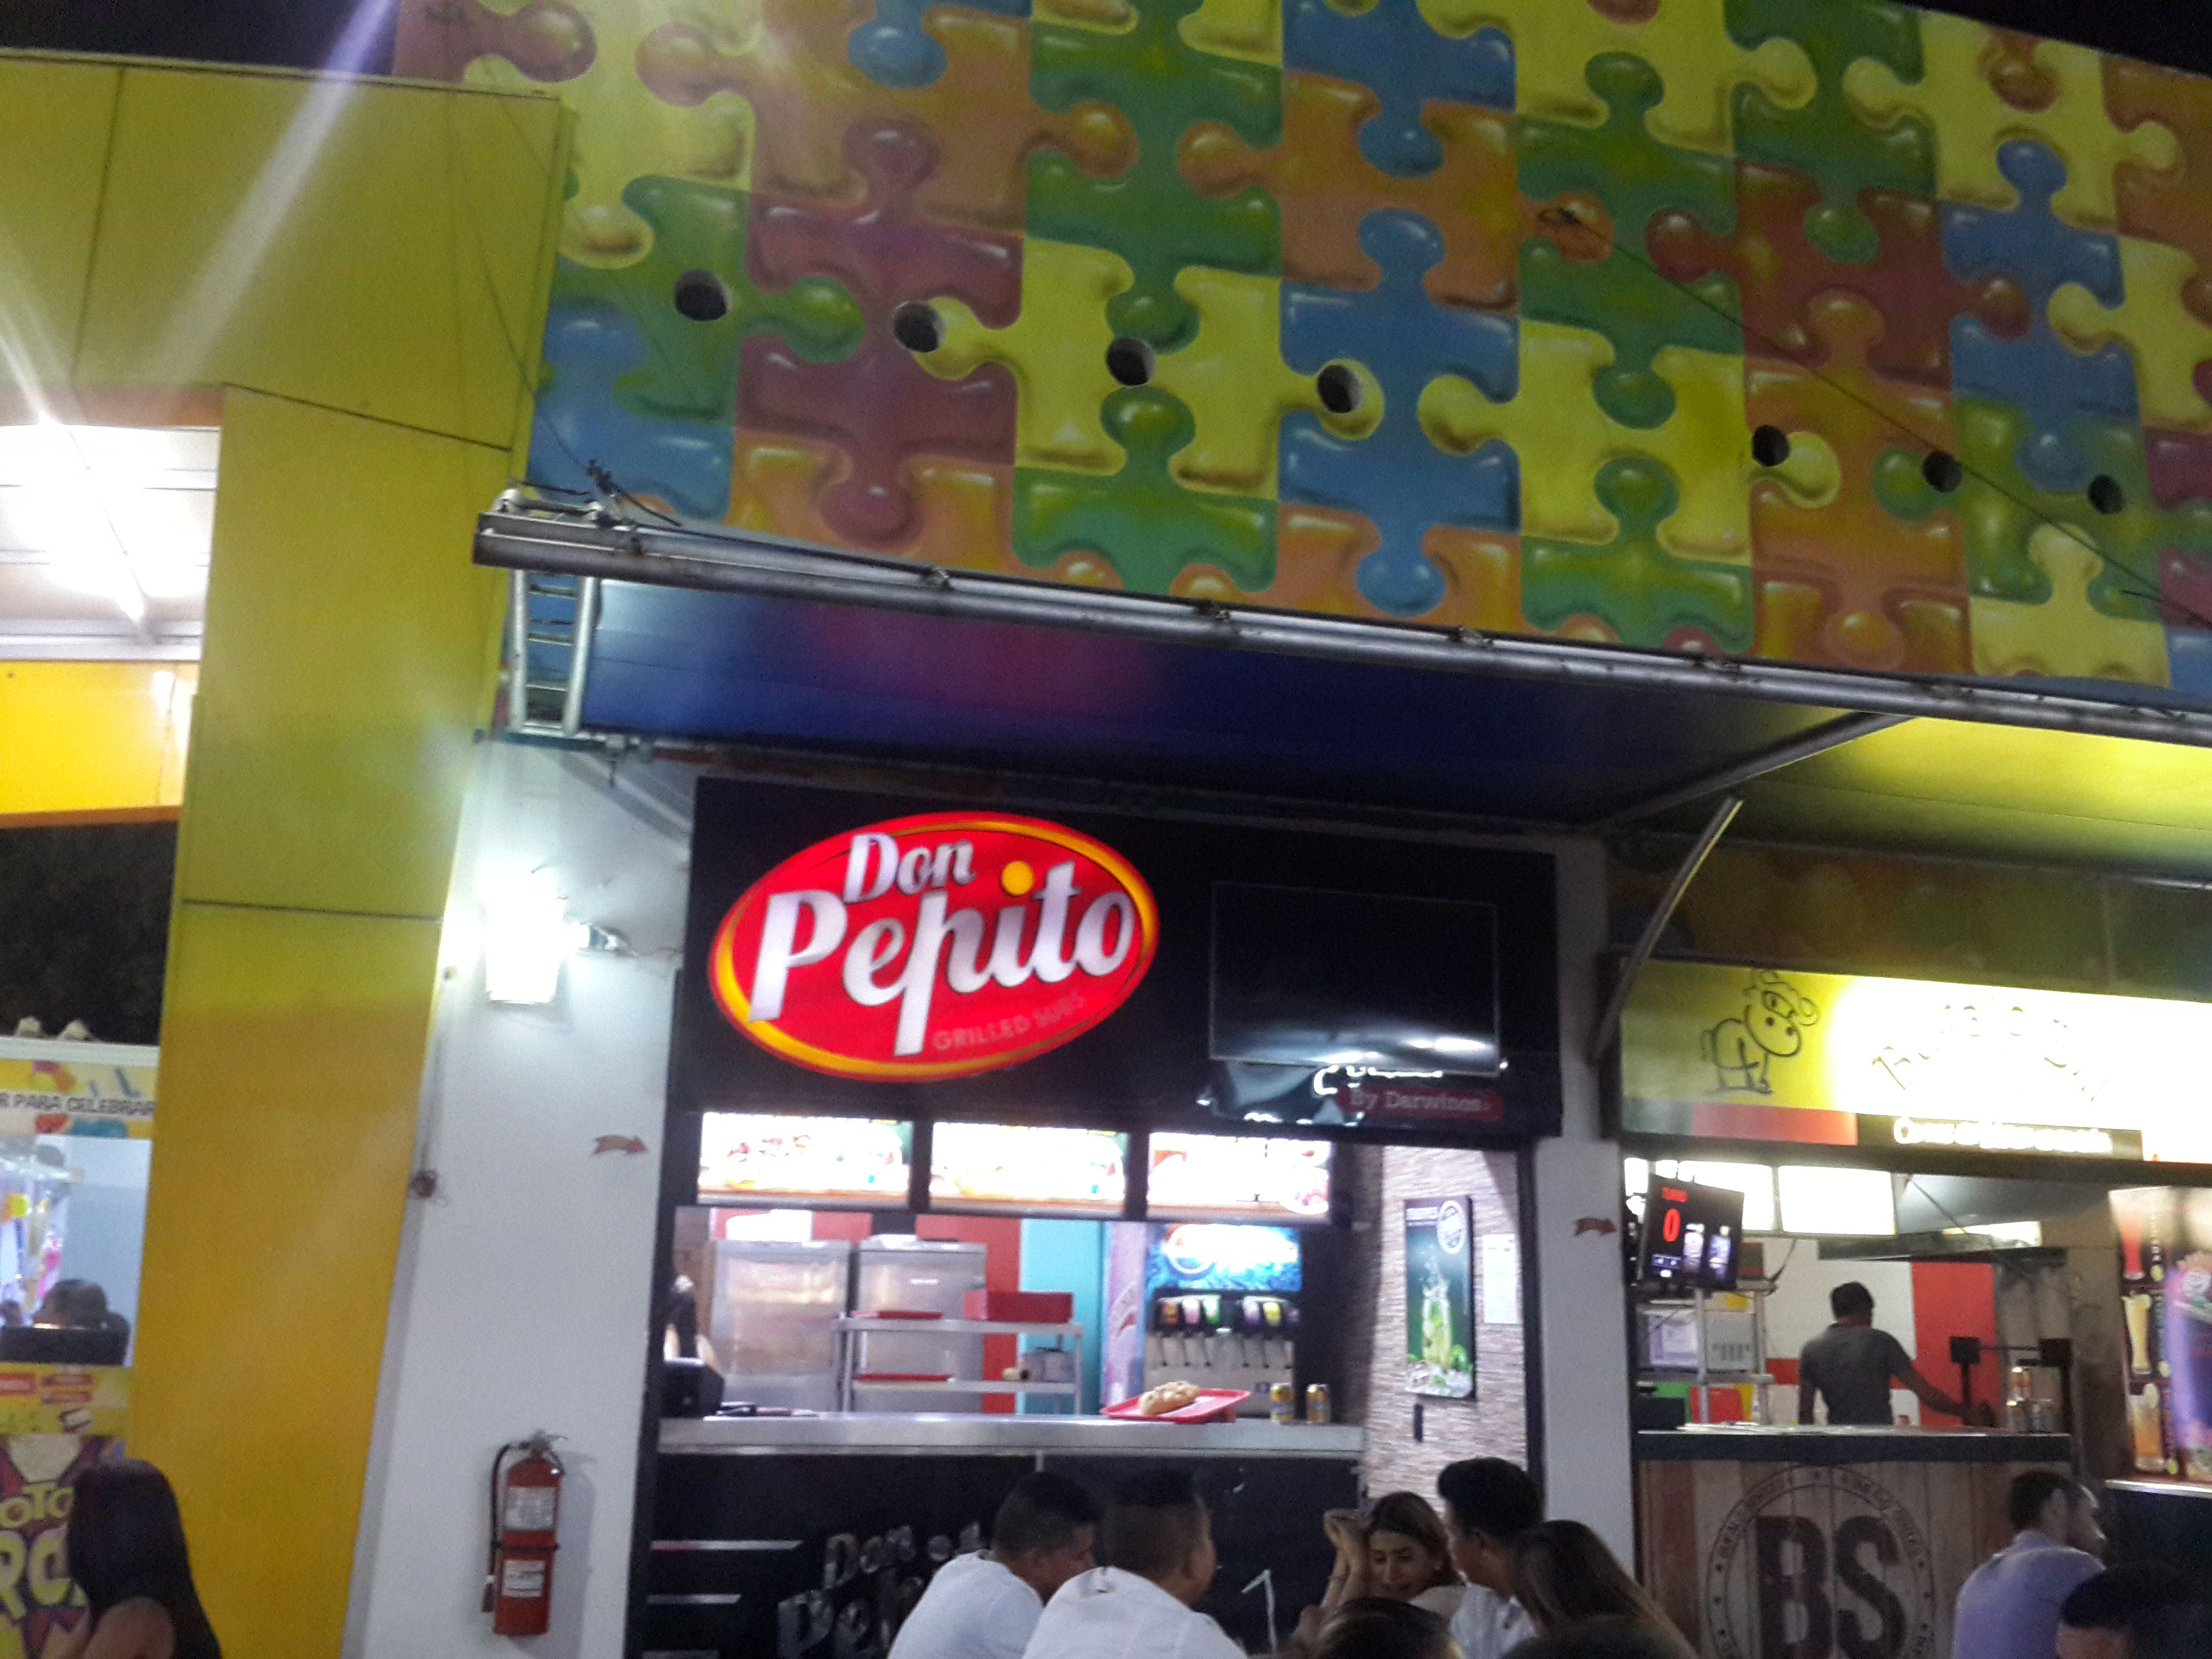 Food in Don Pepito Grilled Subs